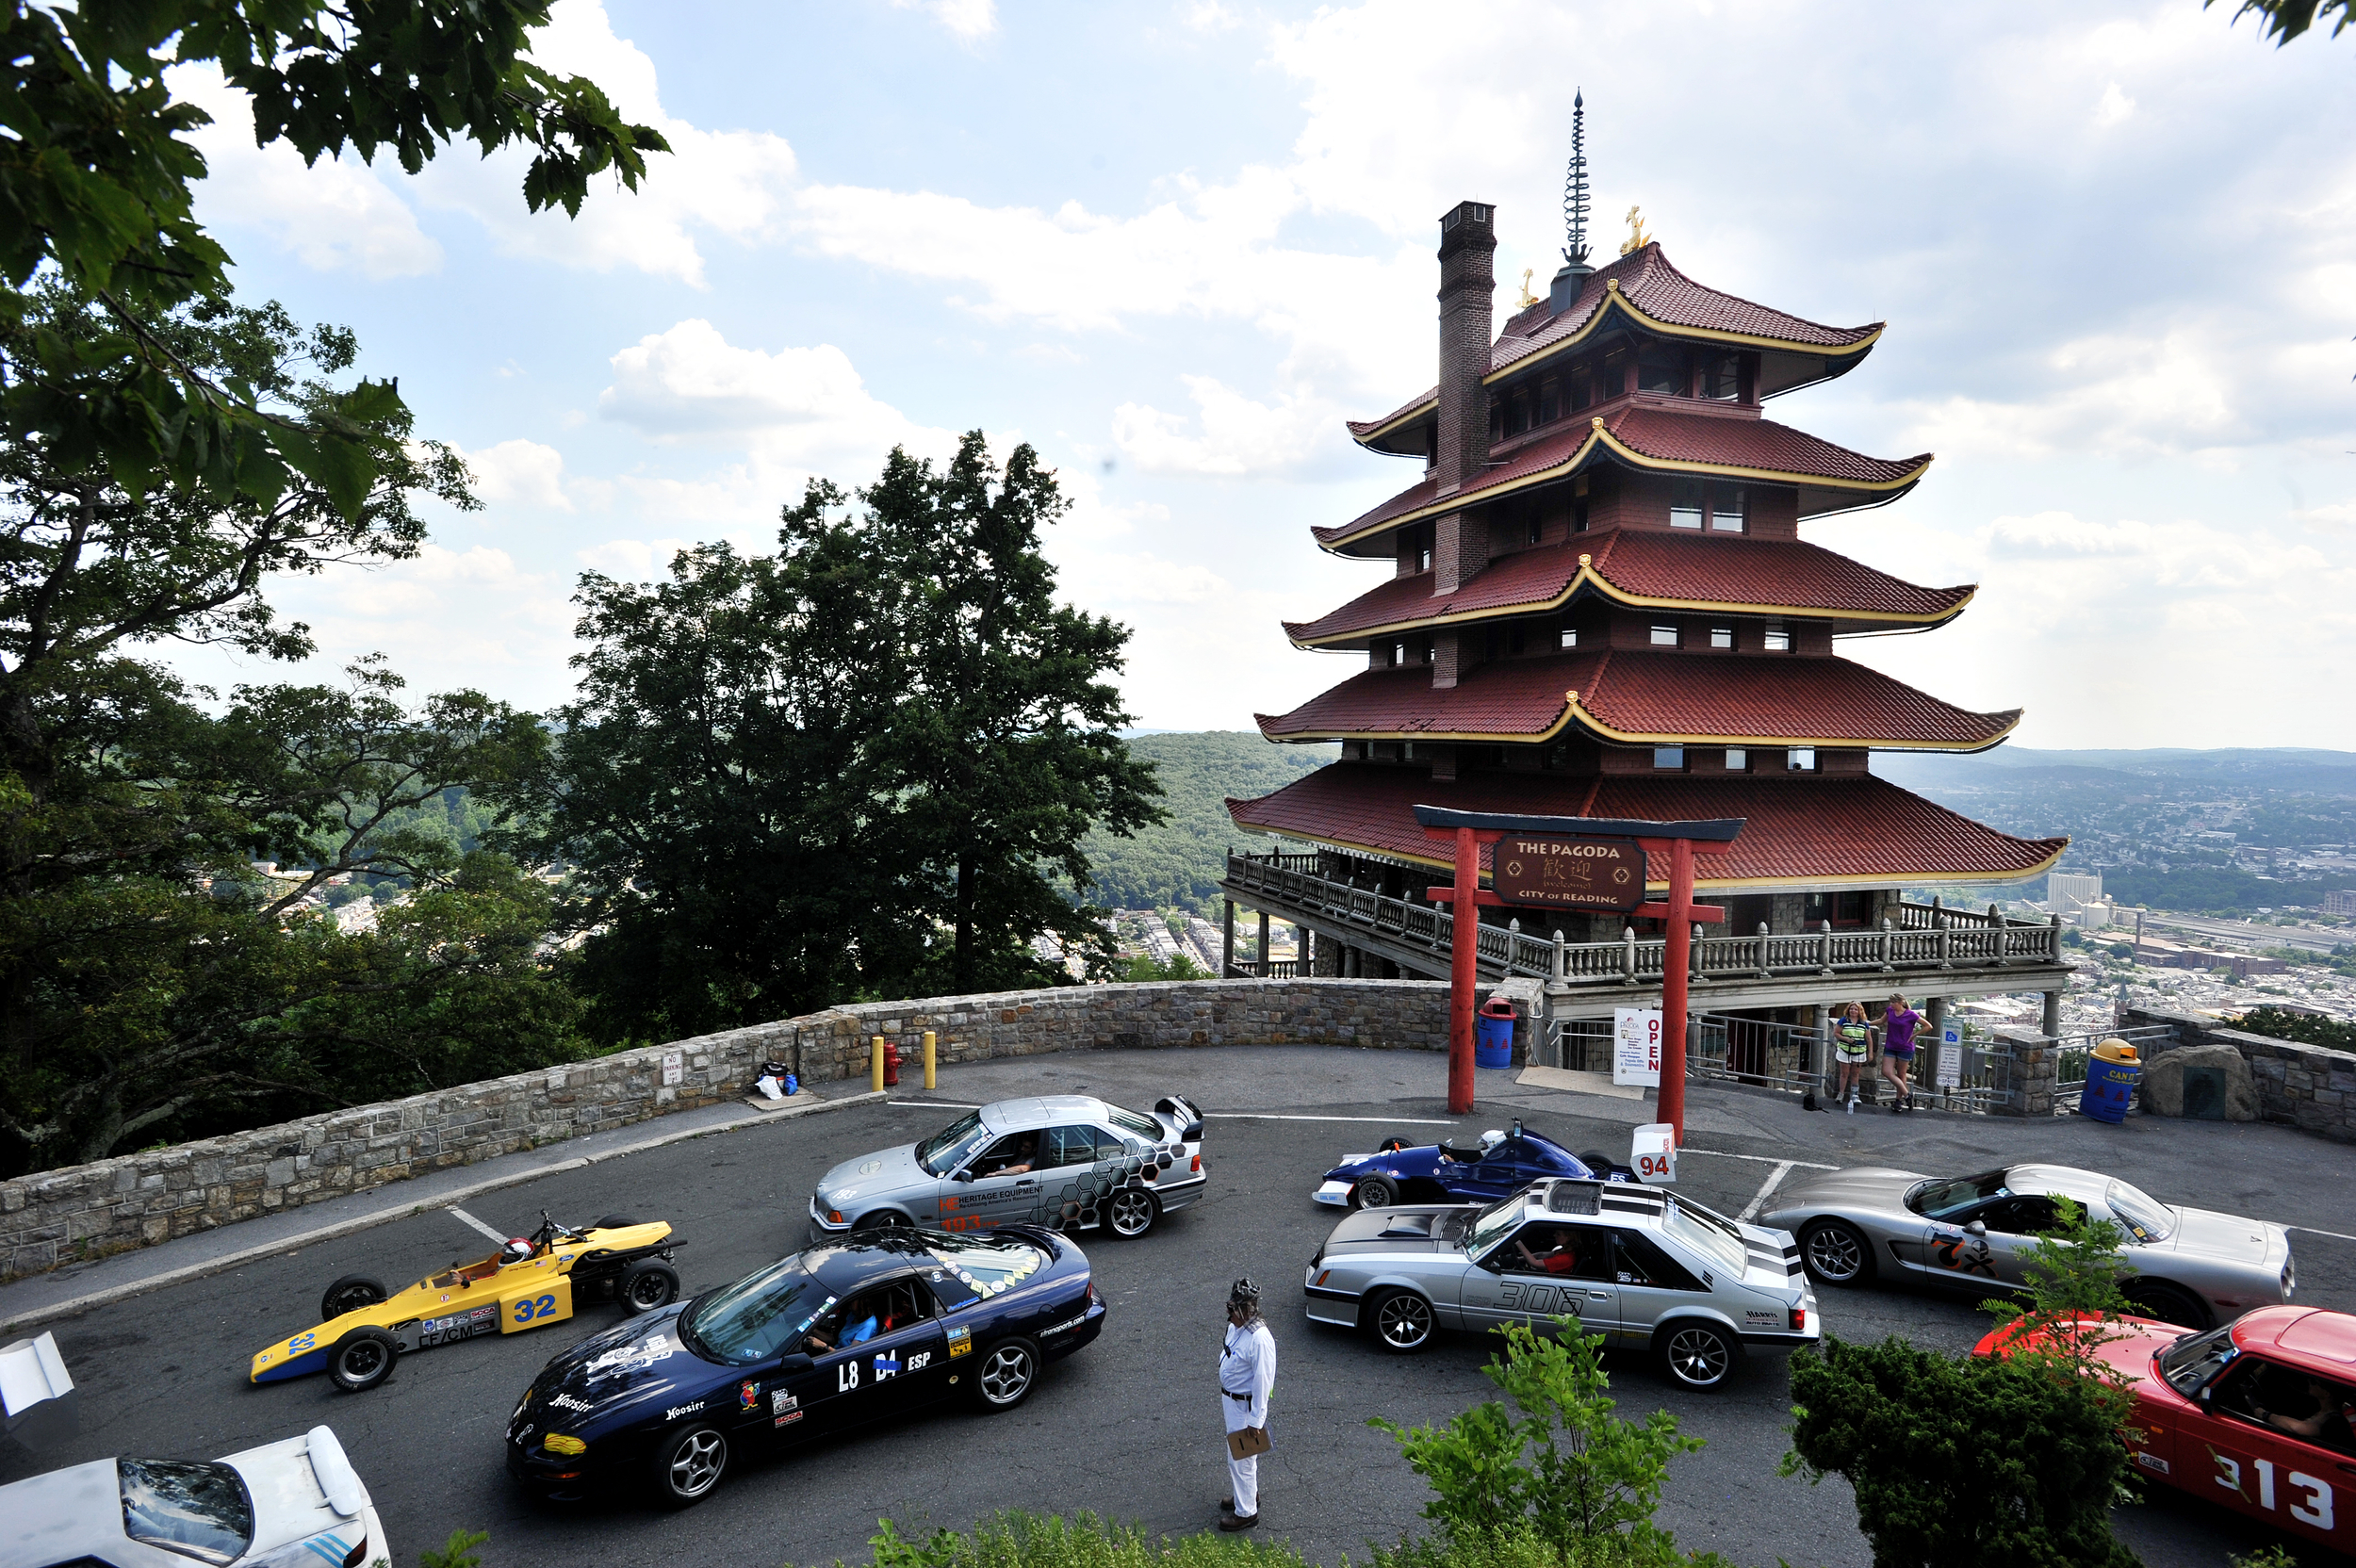 Racers wait to proceed back down the mountain at the Pagoda Hillclimb in Reading, PA, on June 25, 2016. (Reading Eagle: Sarah Stier)